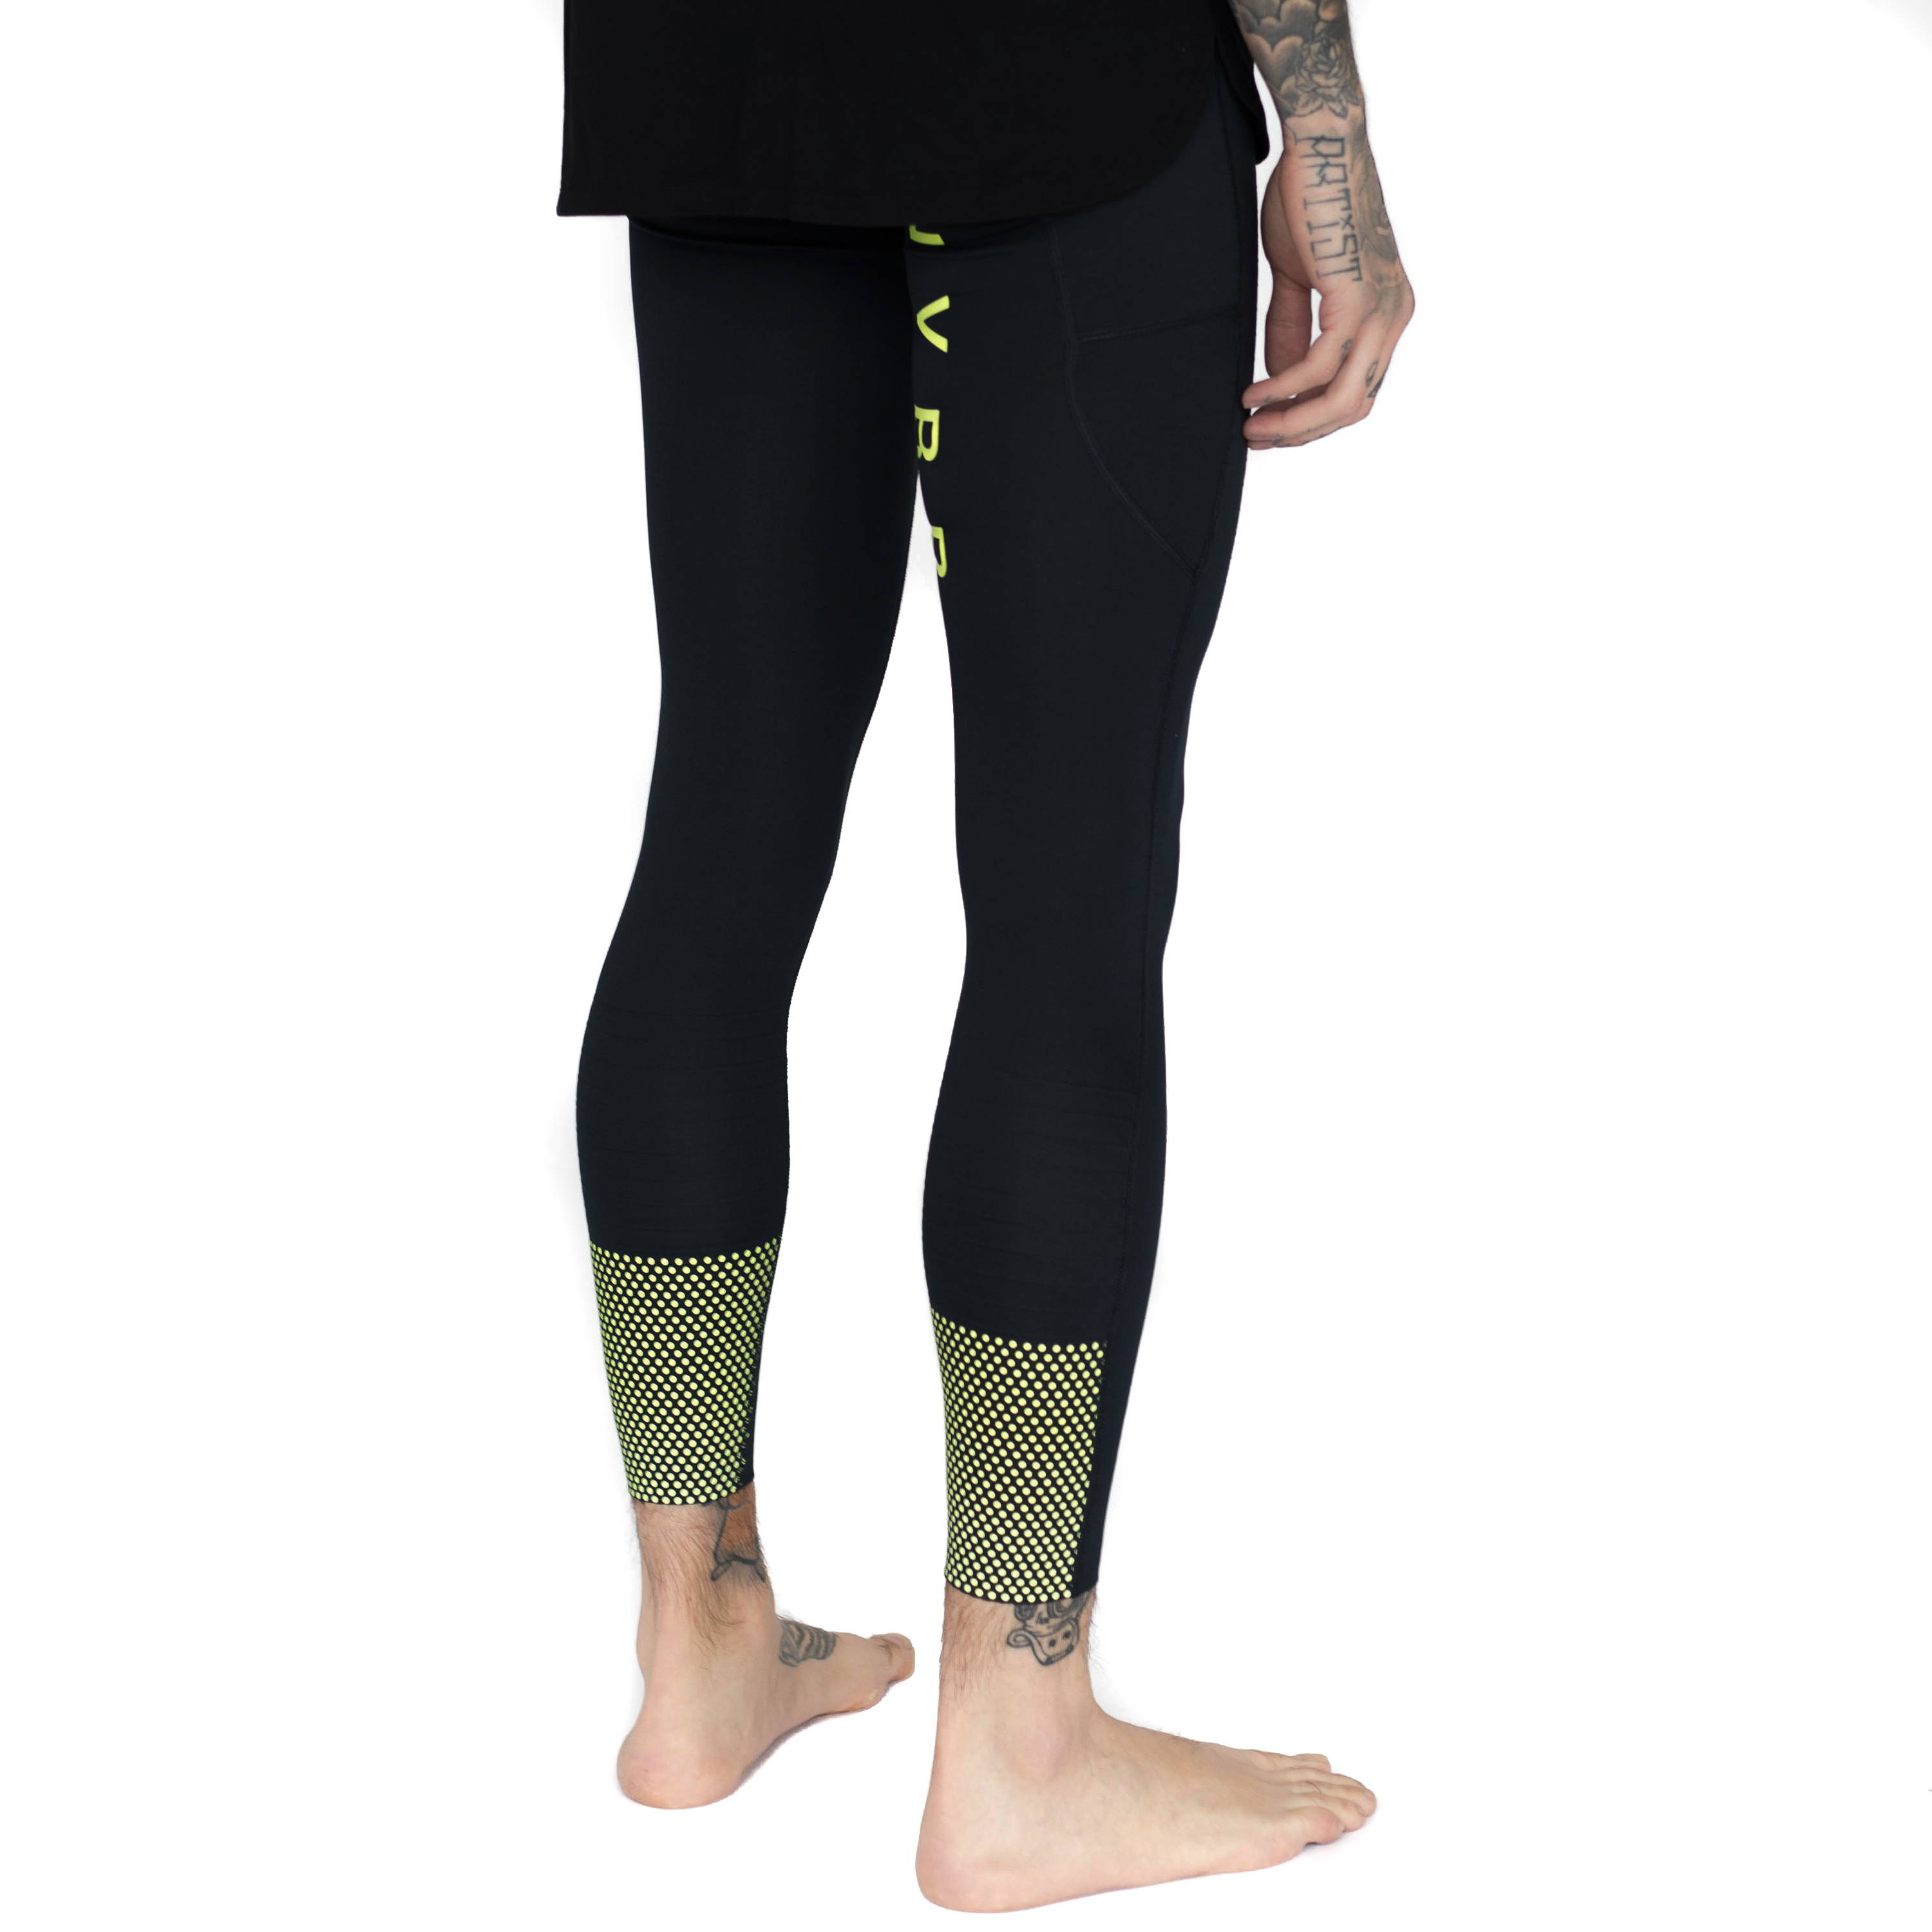 Mens-Glow in Dark-Compression Tight-4